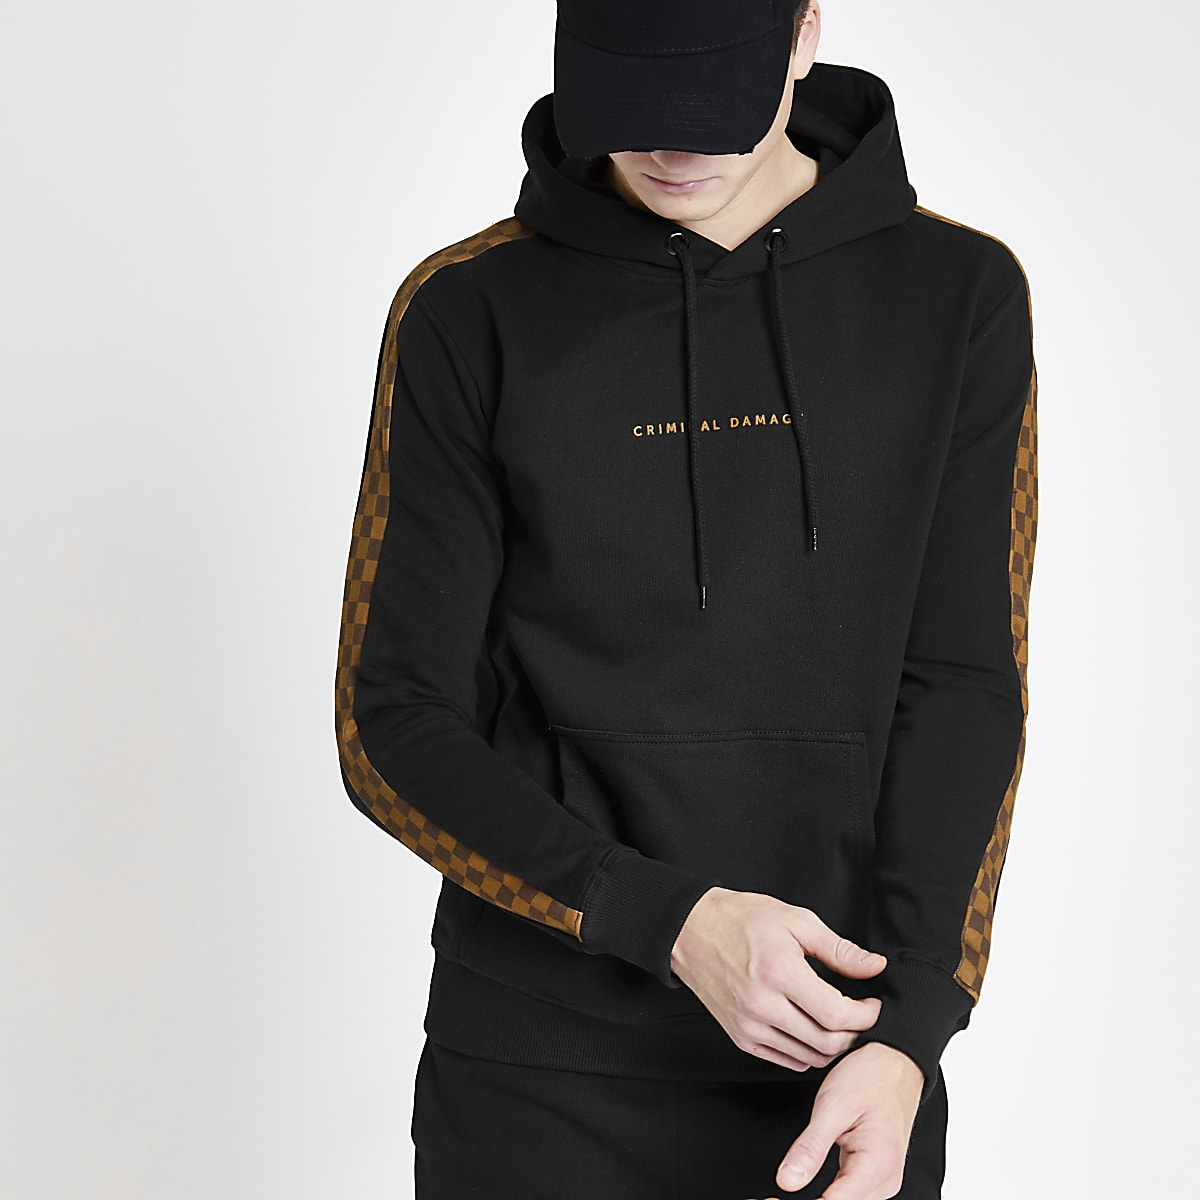 Criminal Damage black check panel hoodie